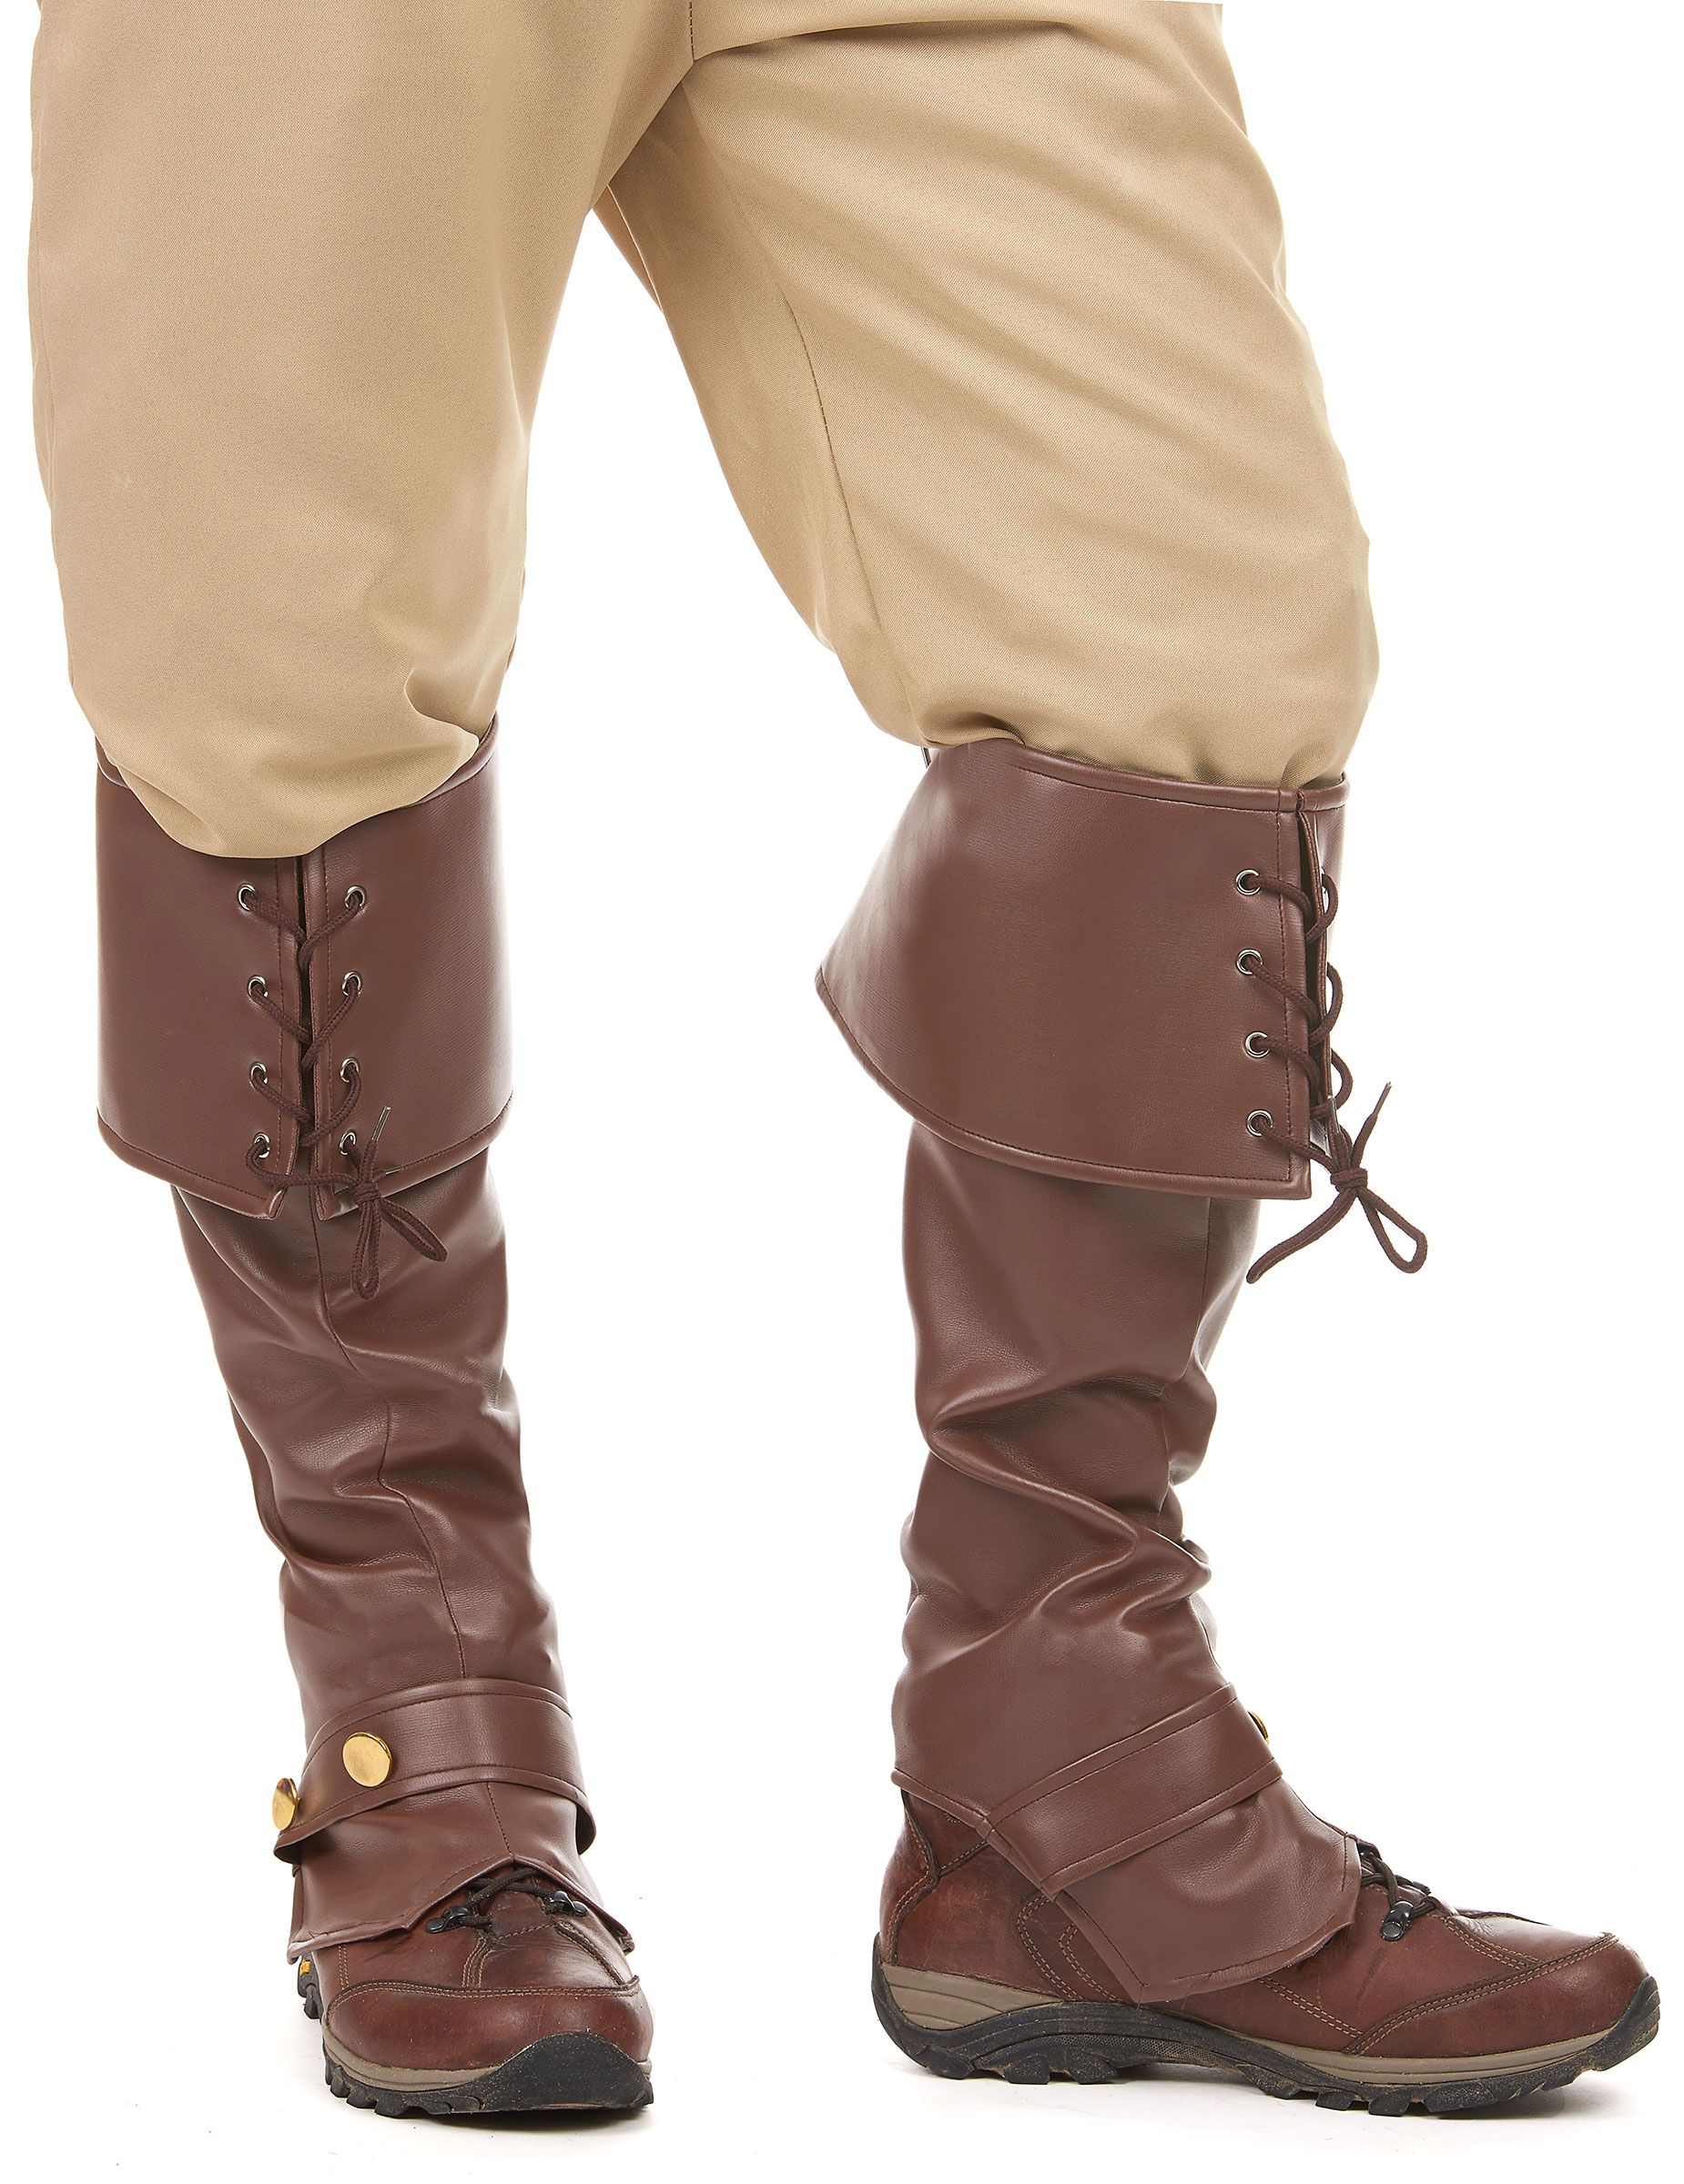 Brown Imitation Leather Boot Covers | Leather boots, Boots